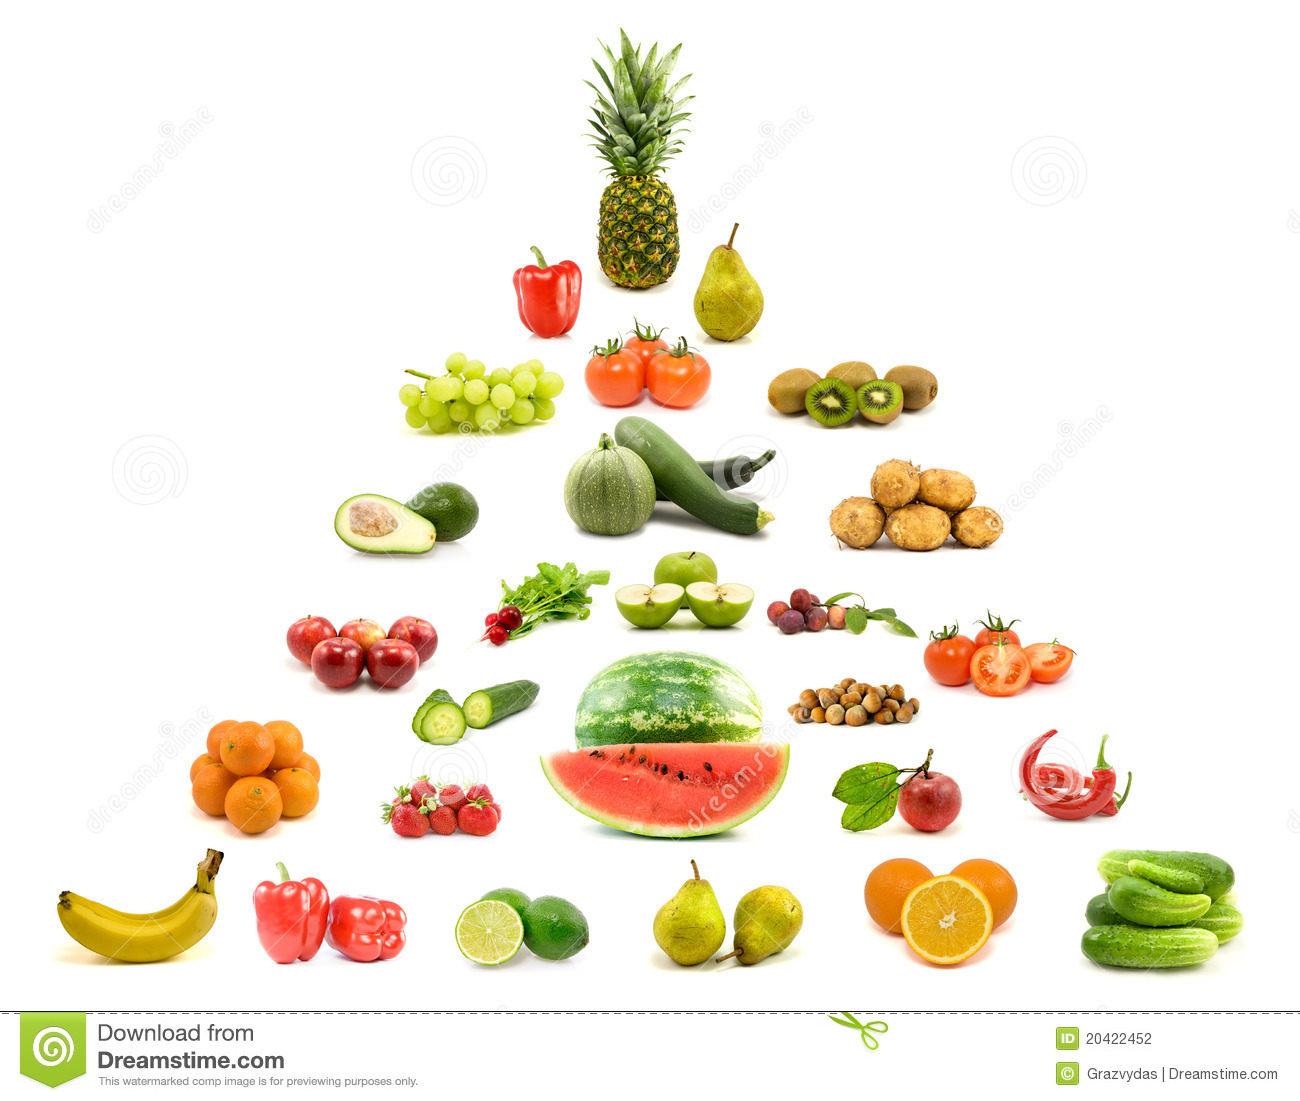 pyramid of fruits and vegetables stock photography image 20422452. Black Bedroom Furniture Sets. Home Design Ideas